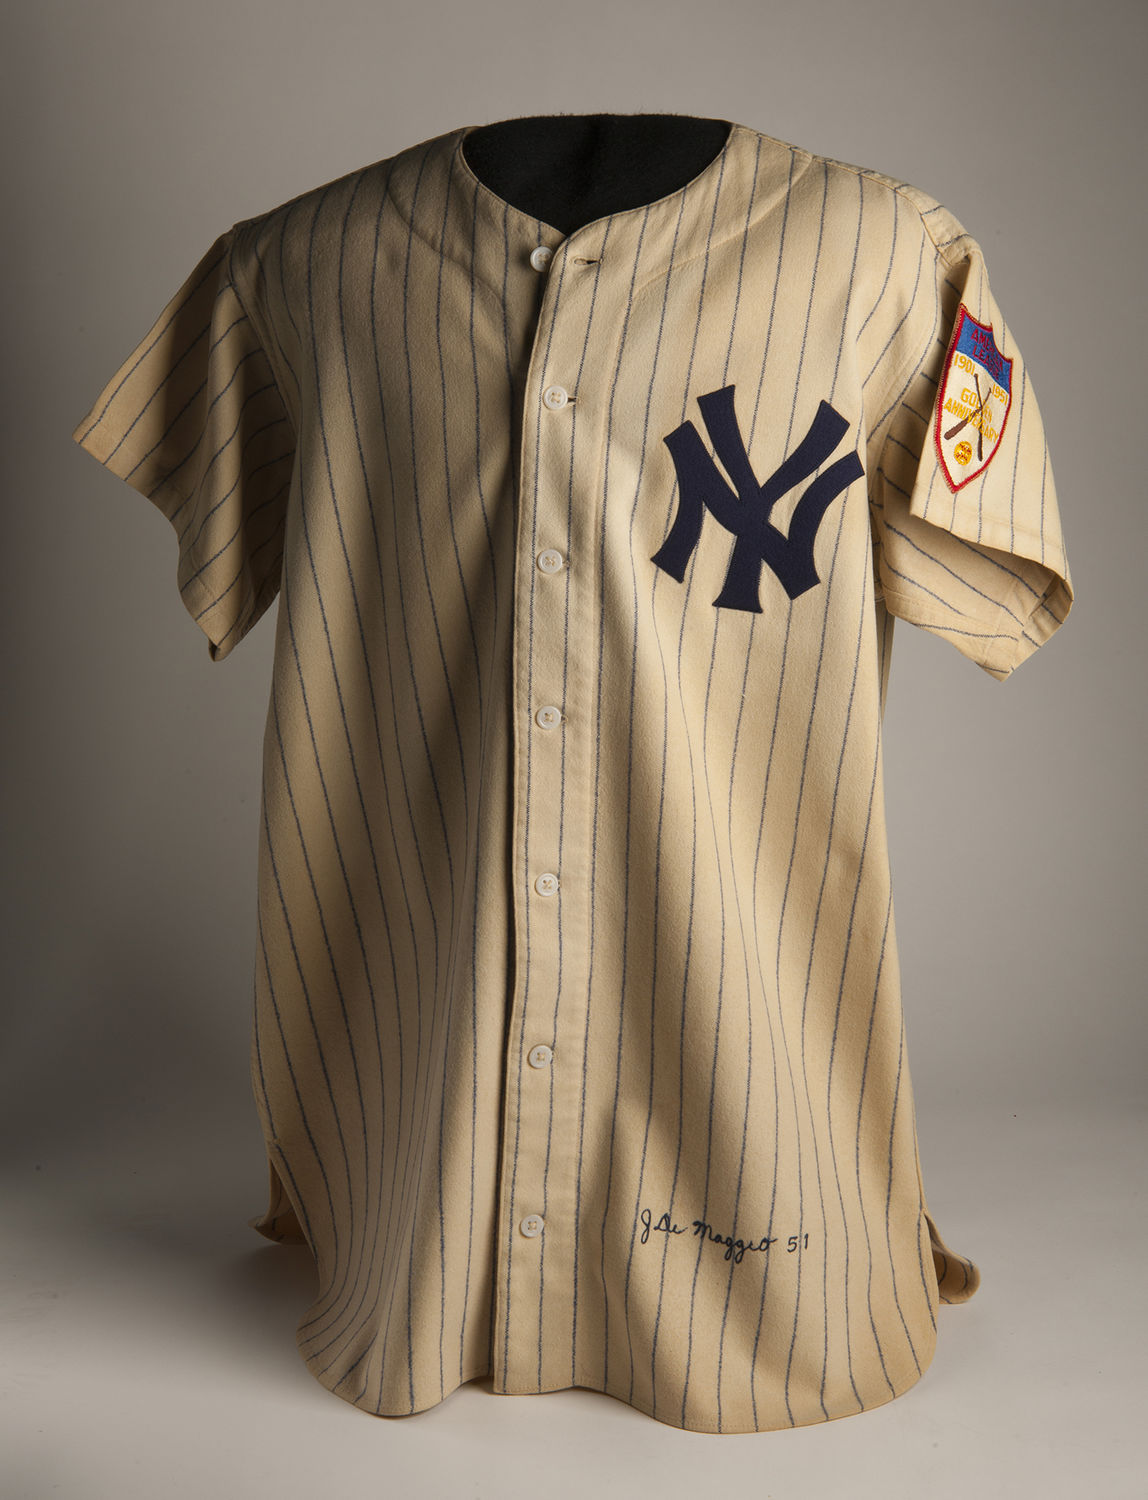 new product 23d7f 37e07 After 65 Years, A Joltin' Discovery at the Hall of Fame ...